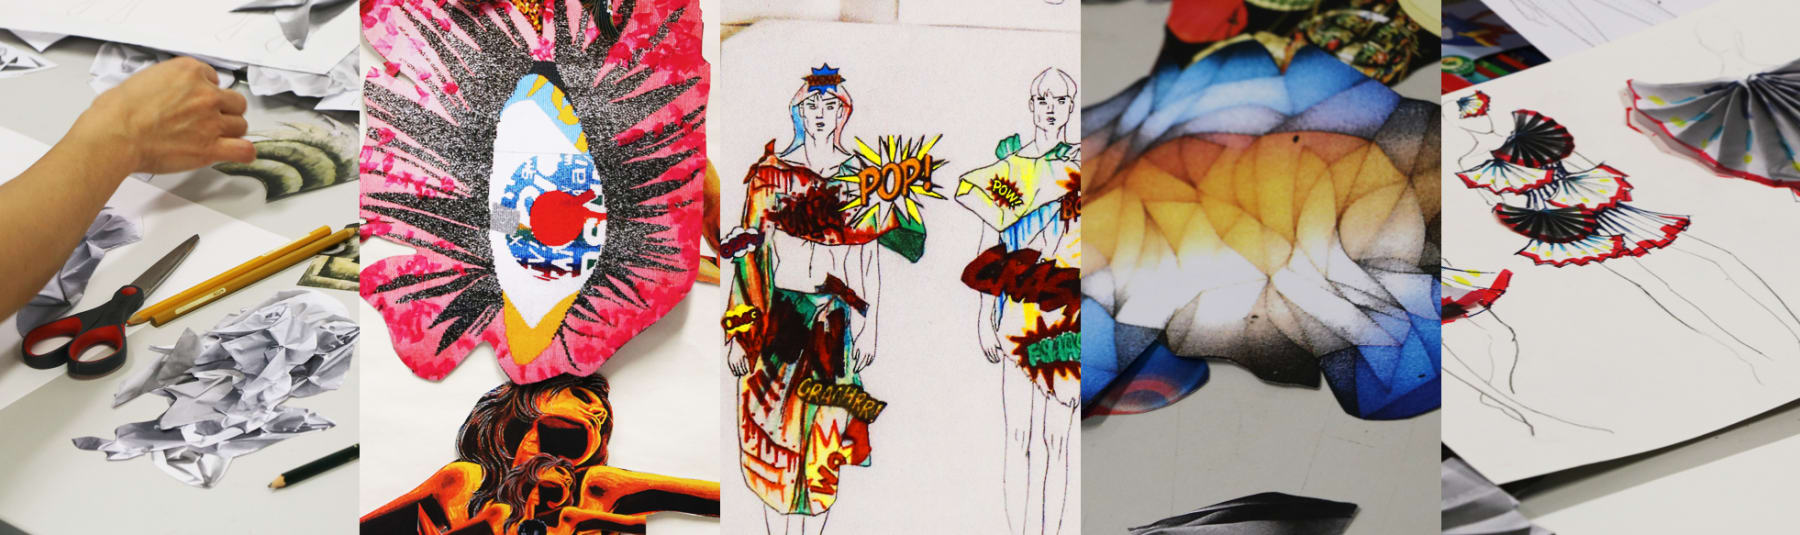 Fashion Mix student work, students at desks and the fashion collages created.